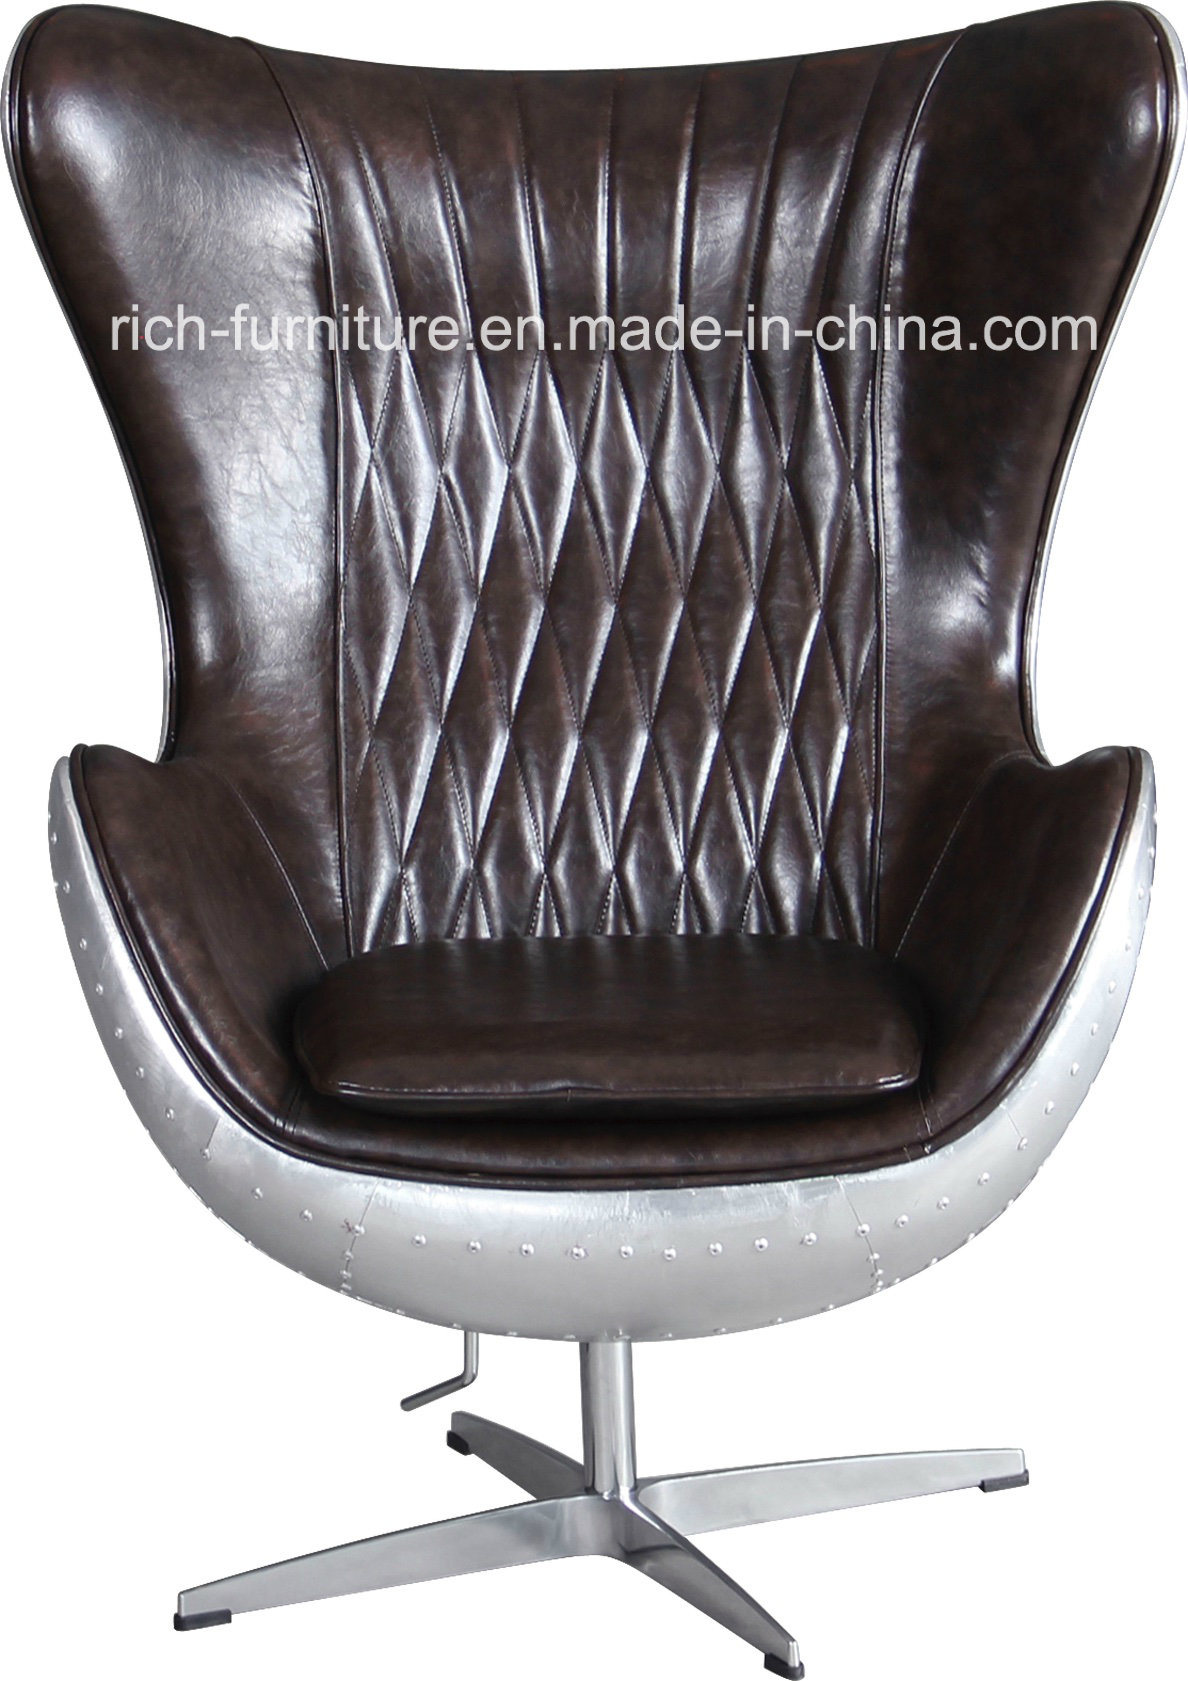 China modern classic replica aviator egg chair china for Designer furniture replica malaysia